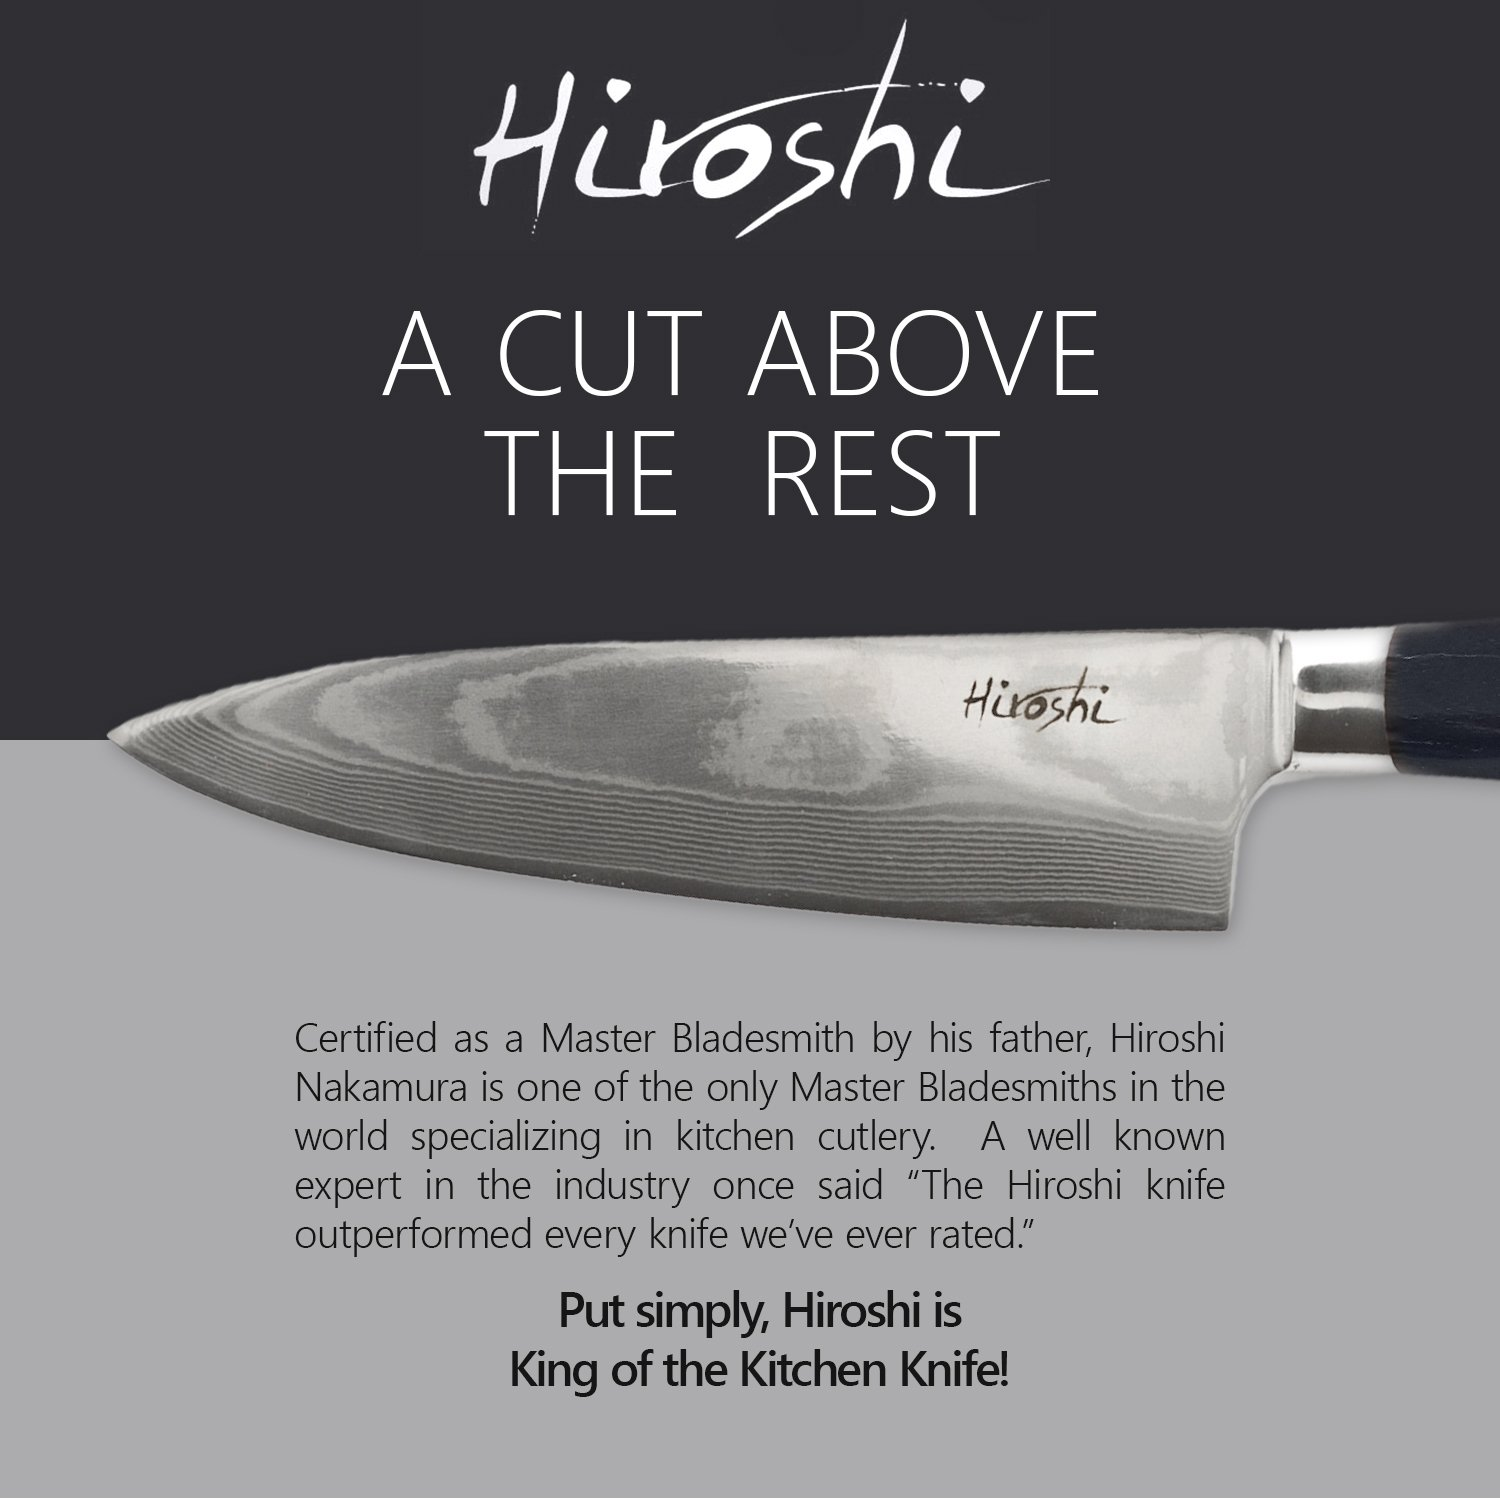 Premium Sushi & Sashimi Chef's Knife – 8'' Ultra High Carbon Damascus Steel – Presented In A Beautiful Gift Box (Black Handle) by HIROSHI (Image #4)